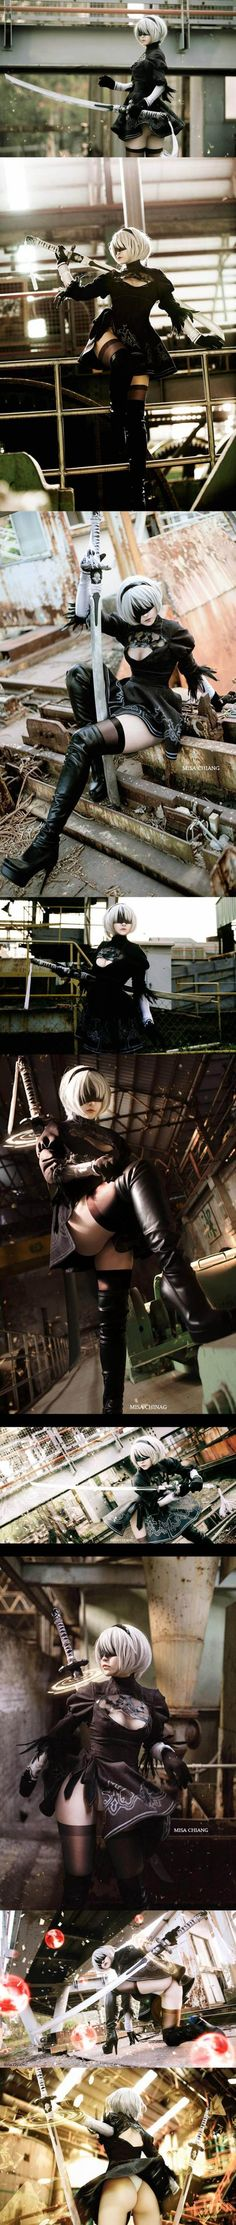 Nier automata 2B cosplay - COSPLAY IS BAEEE!!! Tap the pin now to grab yourself some BAE Cosplay leggings and shirts! From super hero fitness leggings, super hero fitness shirts, and so much more that wil make you say YASSS!!!